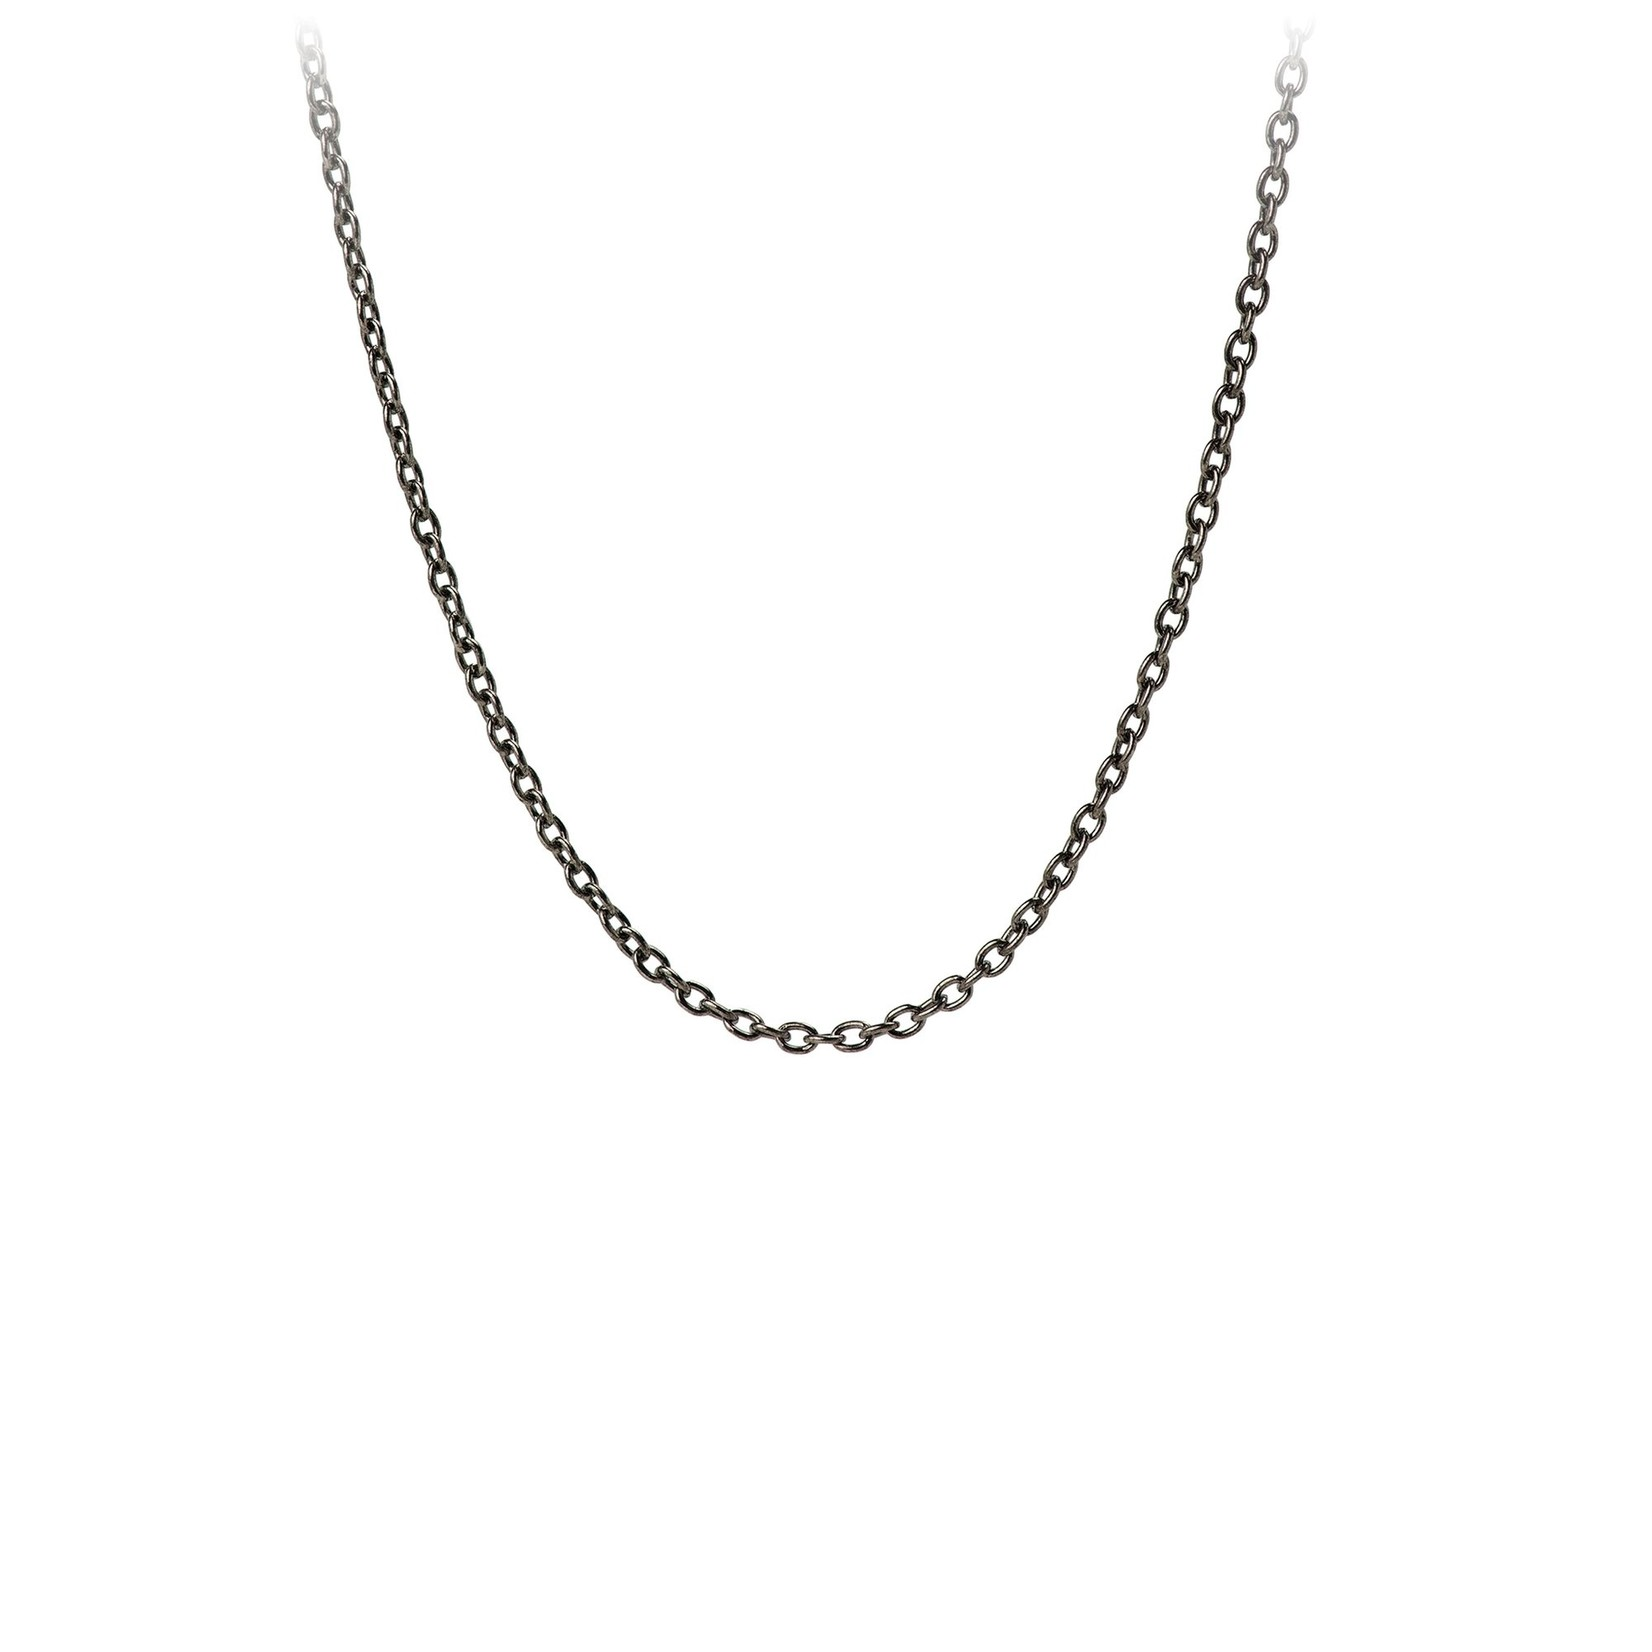 Pyrrha Black Sterling Silver Medium Cable Chain